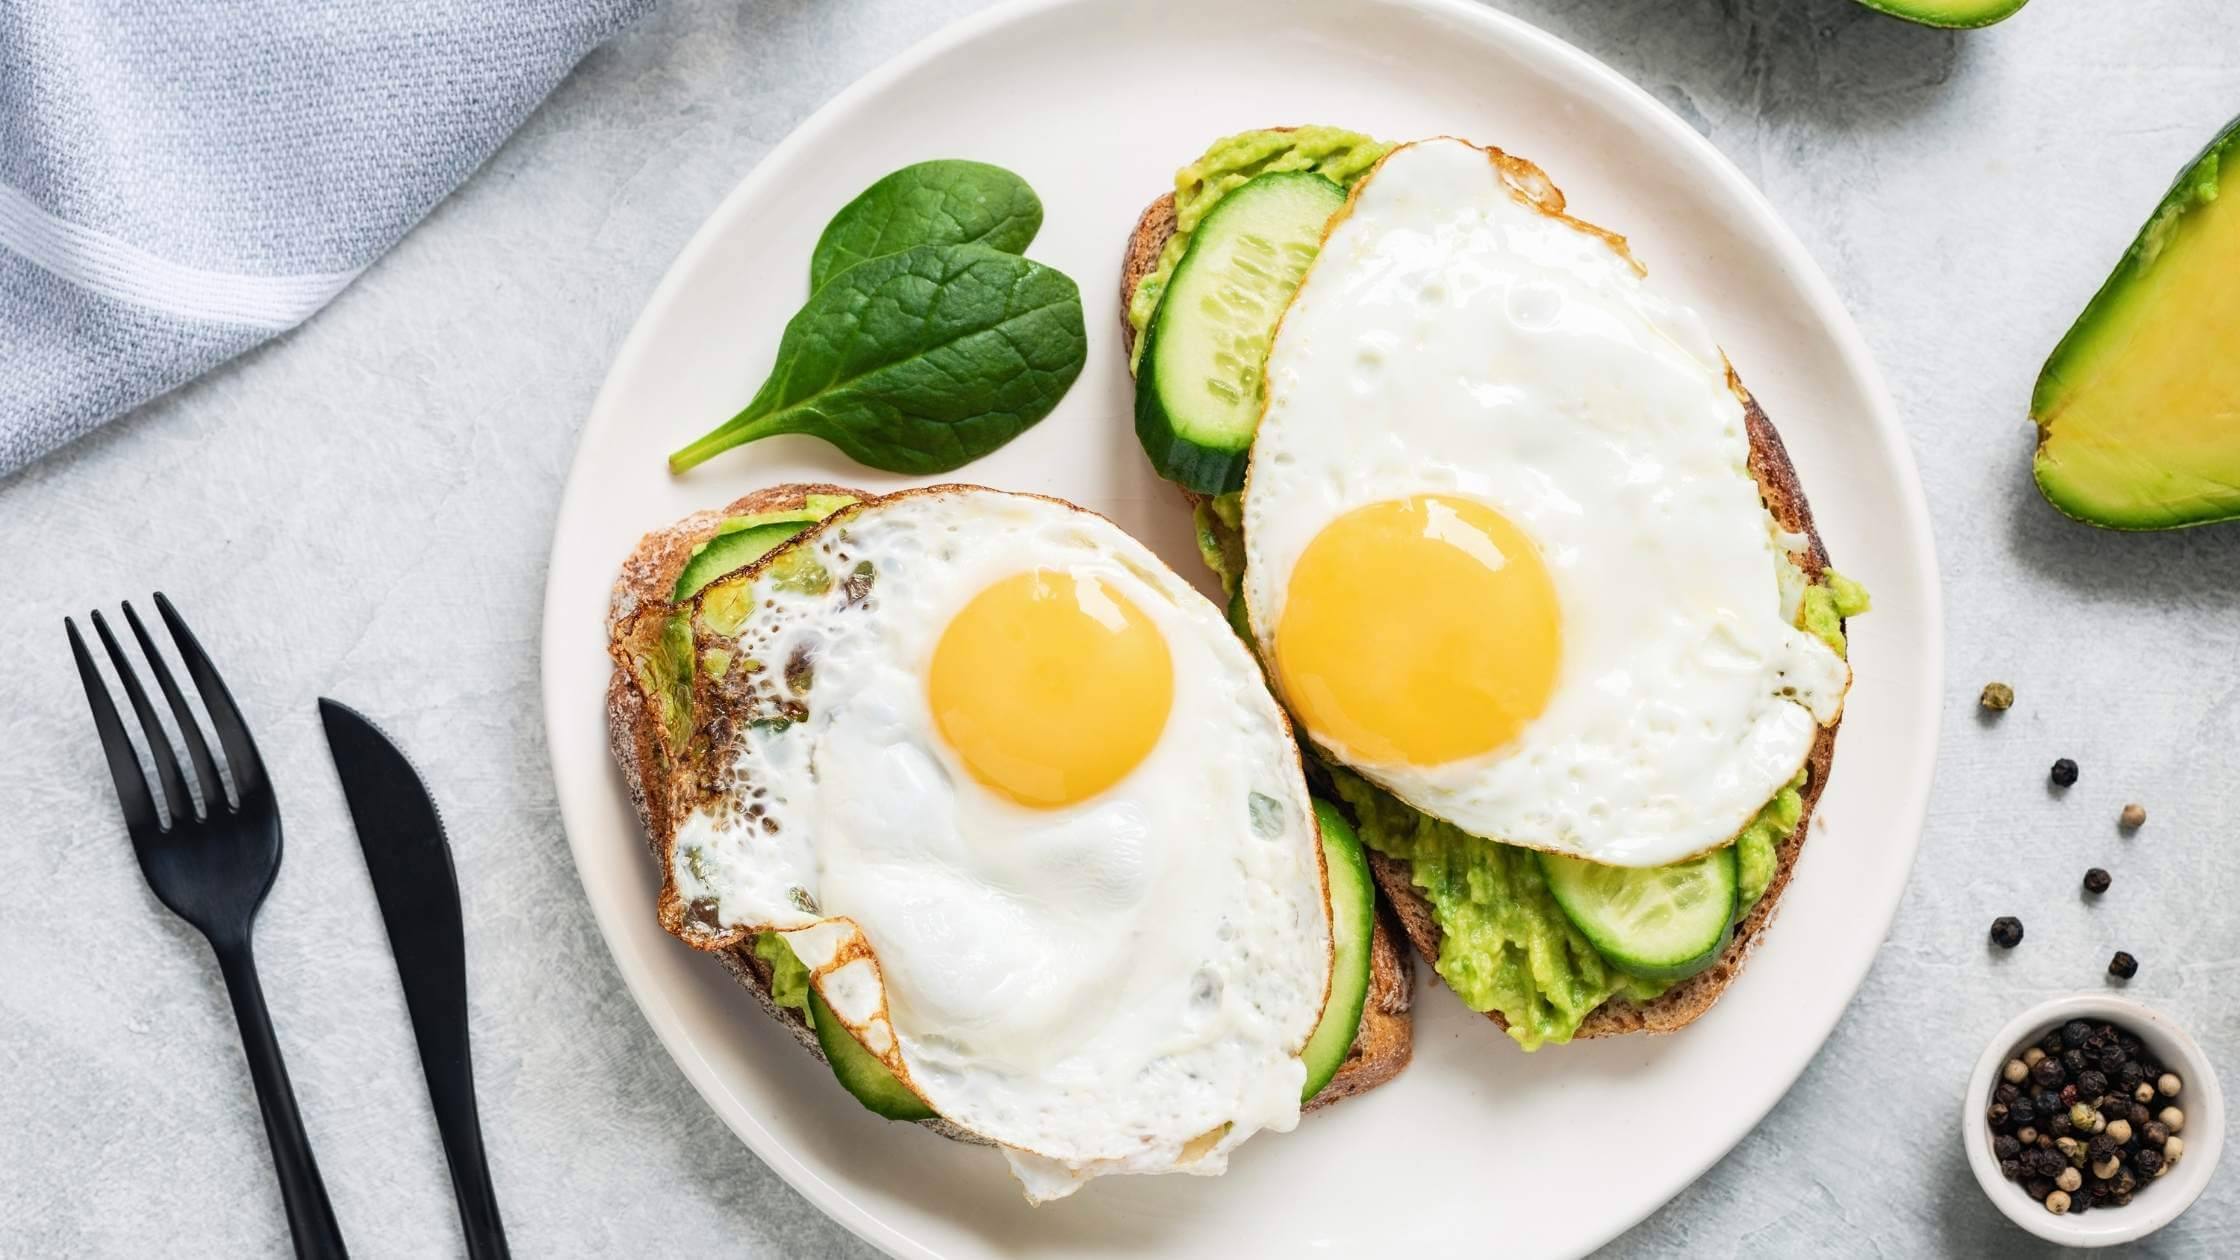 two slices of toast with avocado and sunny side up eggs on top